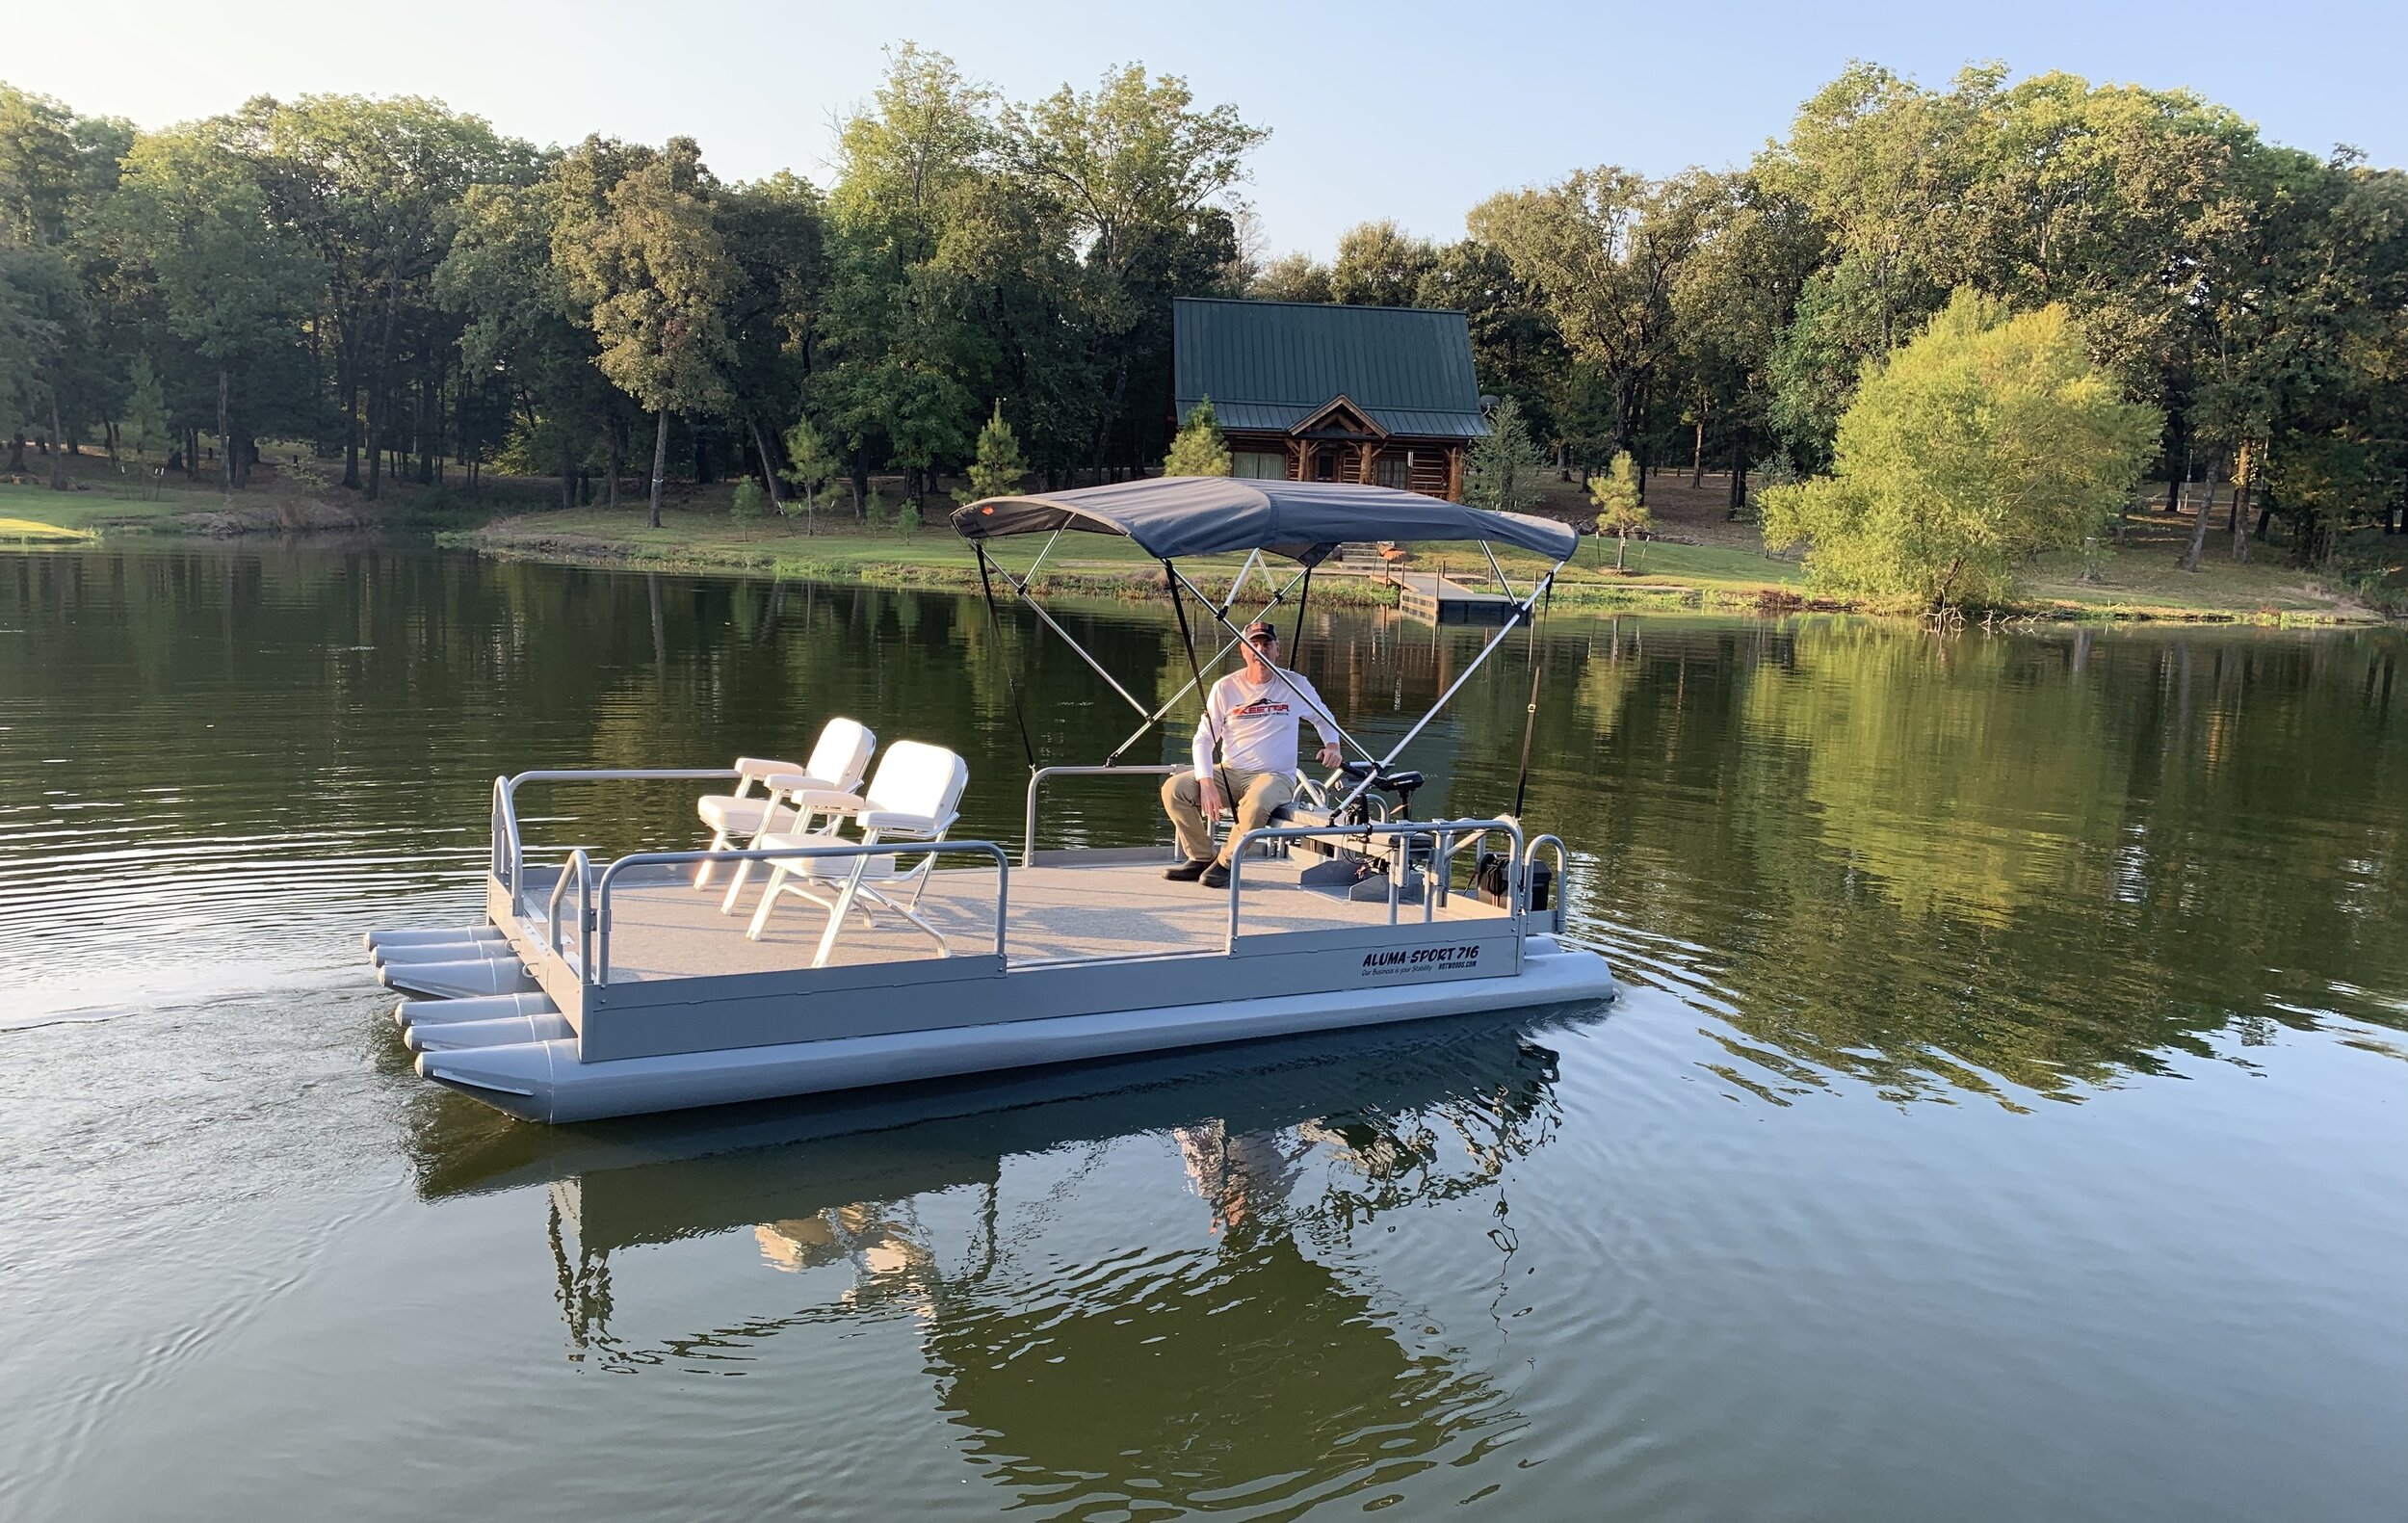 716 shown in light gray powder coat finish with gray canopy. This premium paint will set your boat apart from any on the lake. Also with the stability of this craft with 6 logs and our ultra low profile, you will be amazed at how it maneuvers and handles on the water.